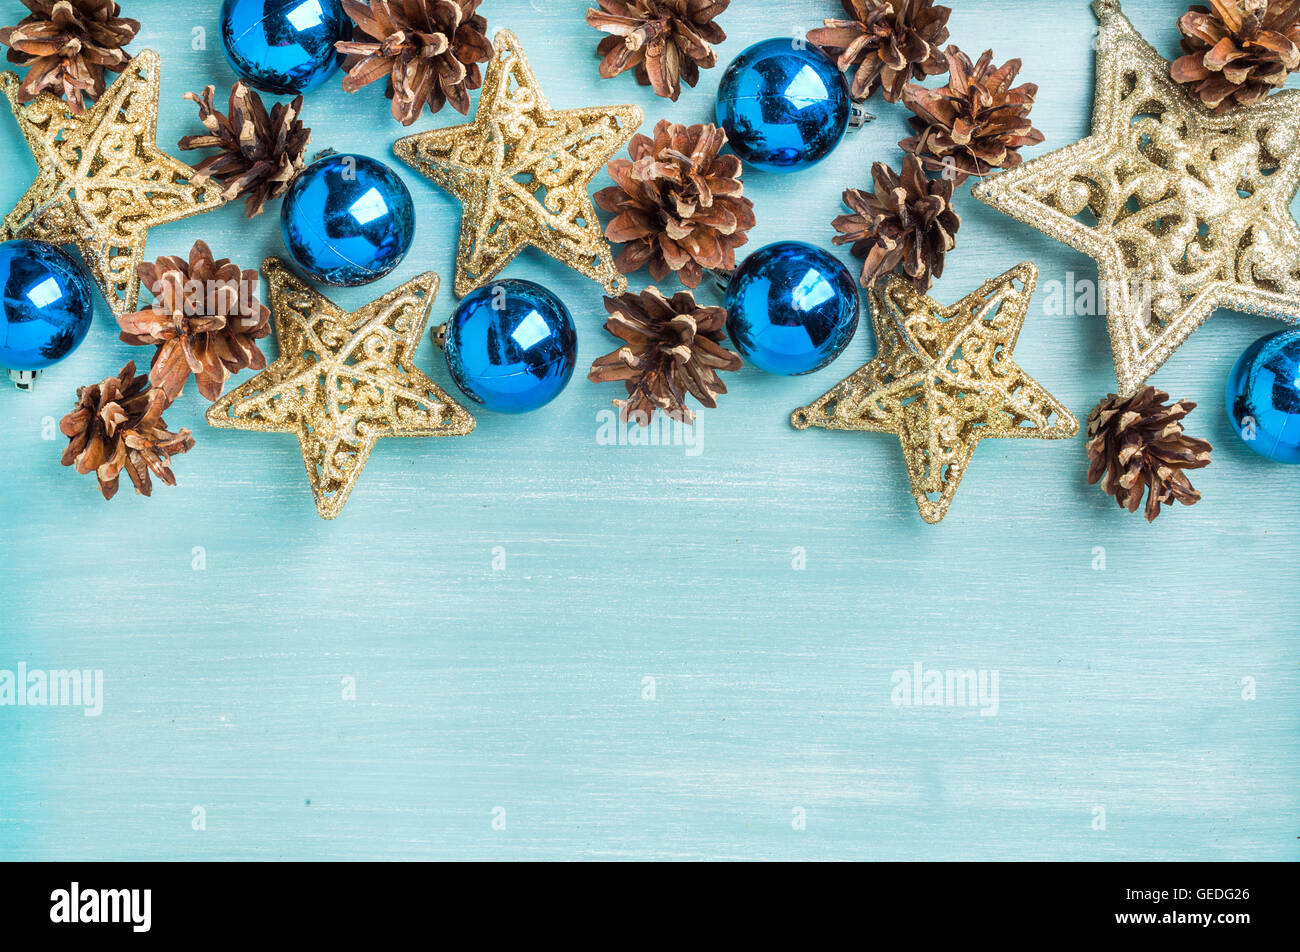 Christmas or new year decoration background: pine cones, blue glass balls, golden stars on painted backdrop, copy - Stock Image